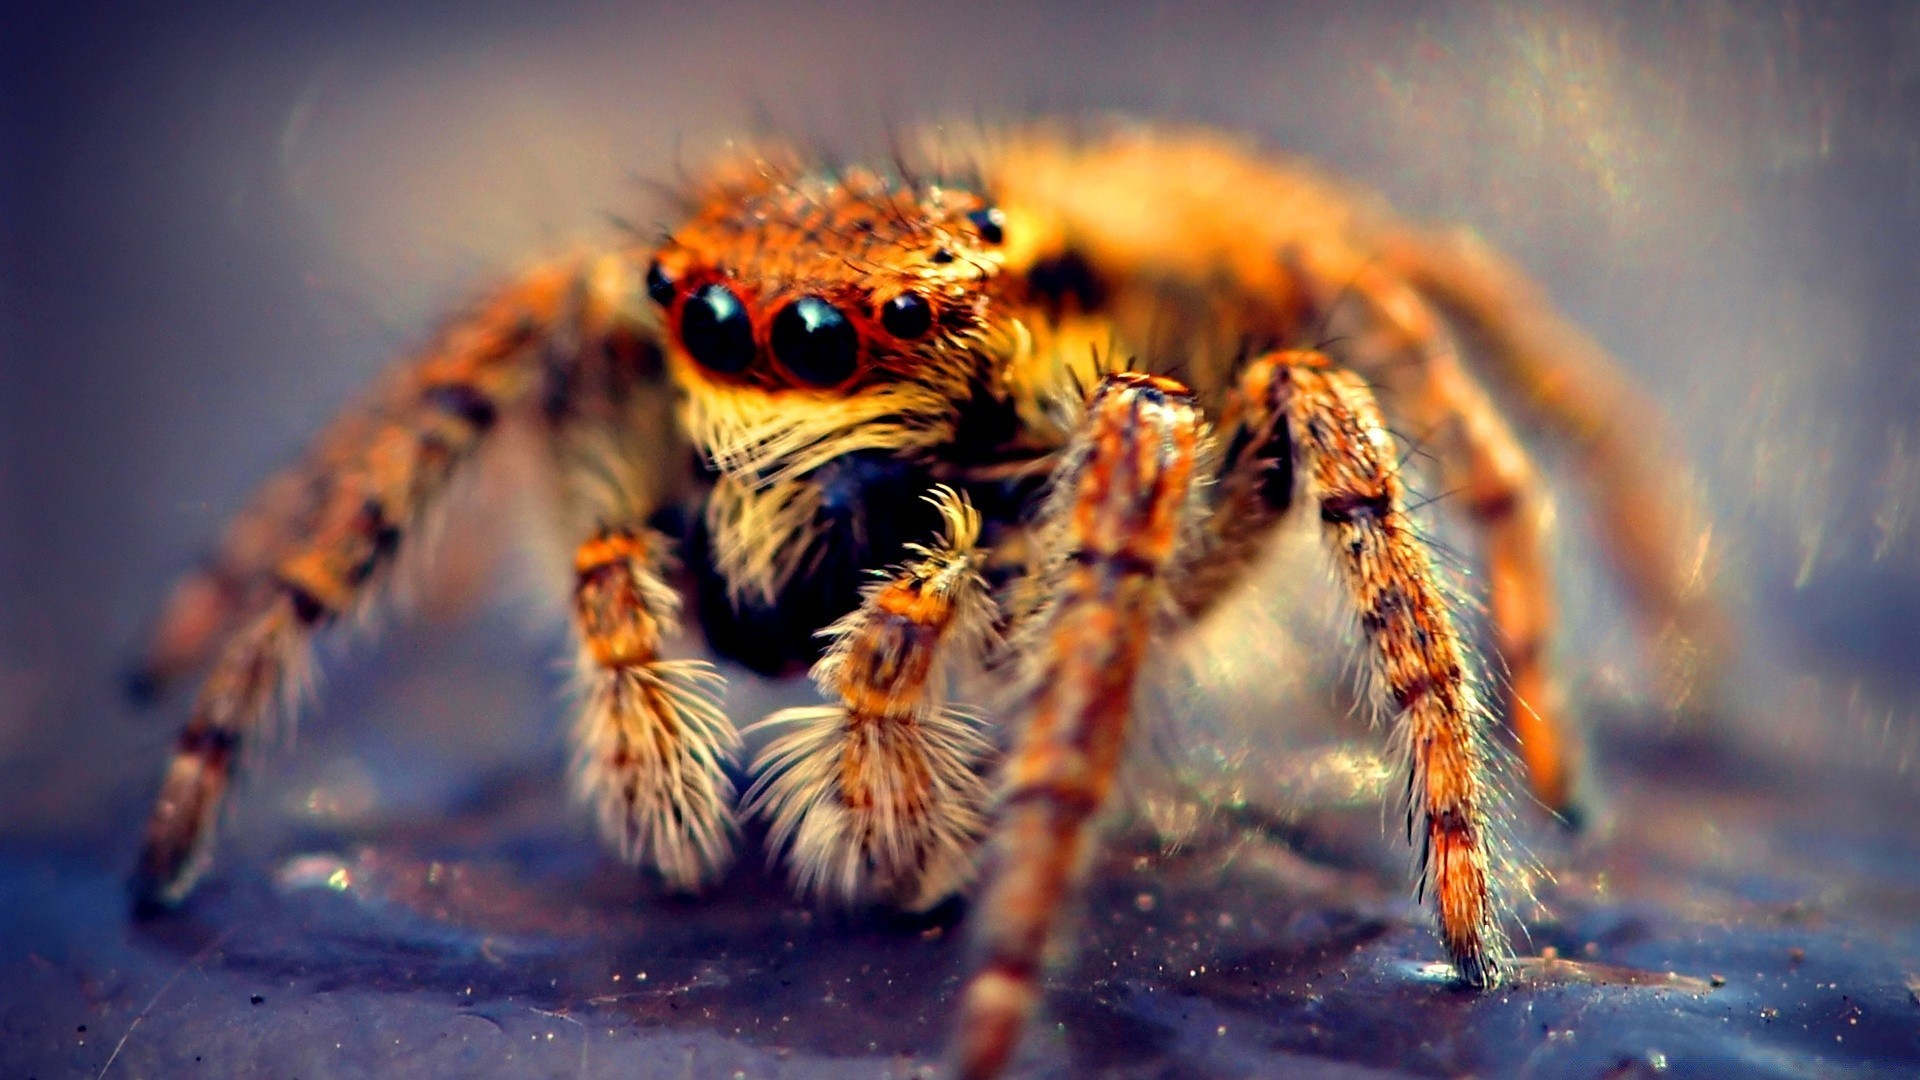 Insects spider wildlife nature animal arachnid insect close-up invertebrate  HD wallpaper. Android wallpapers for free.